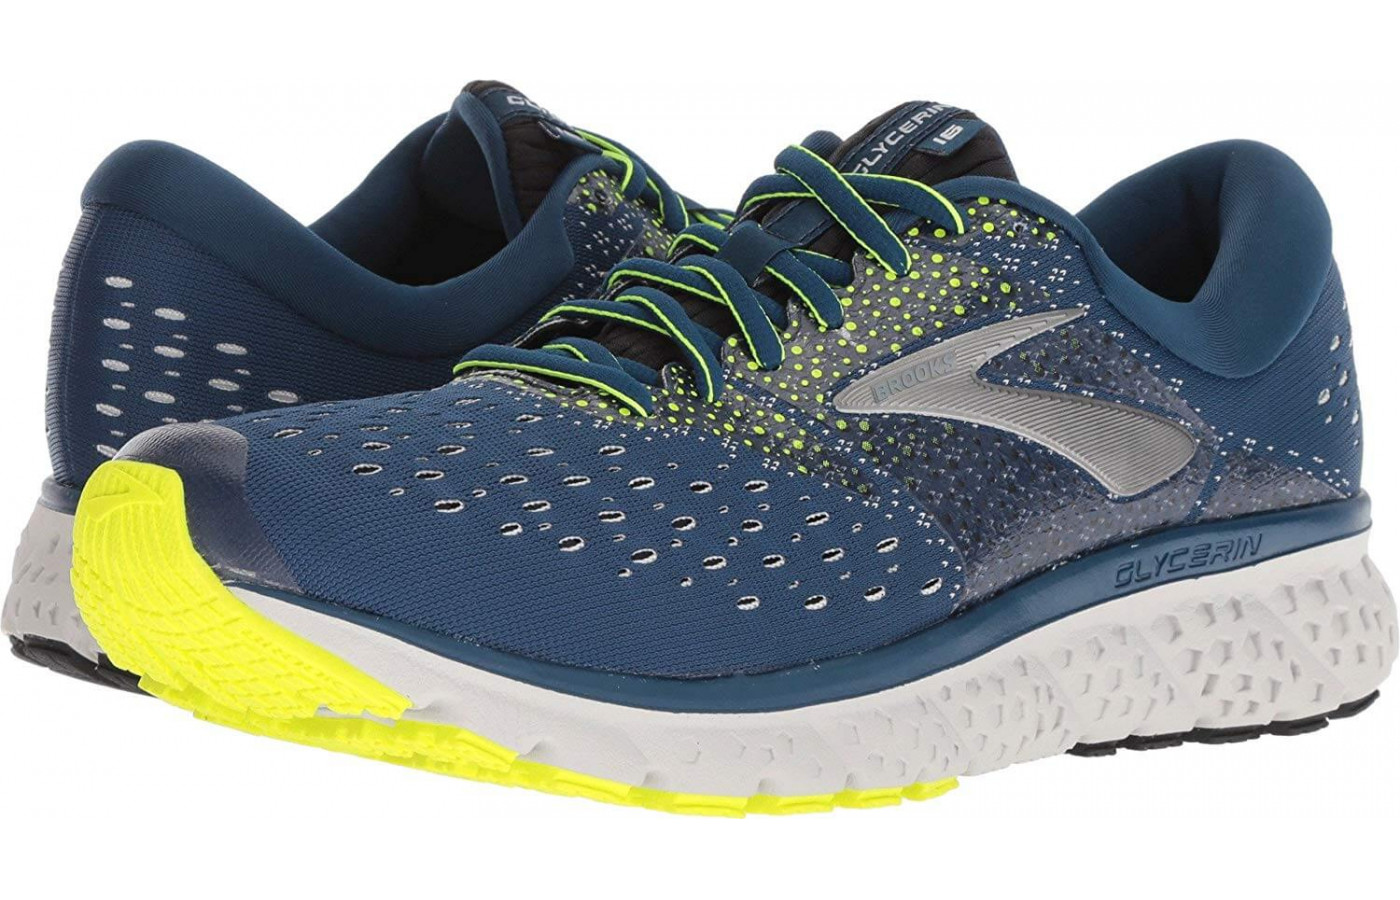 10553fd8735 Brooks Glycerin 16 Reviewed - To Buy or Not in May 2019